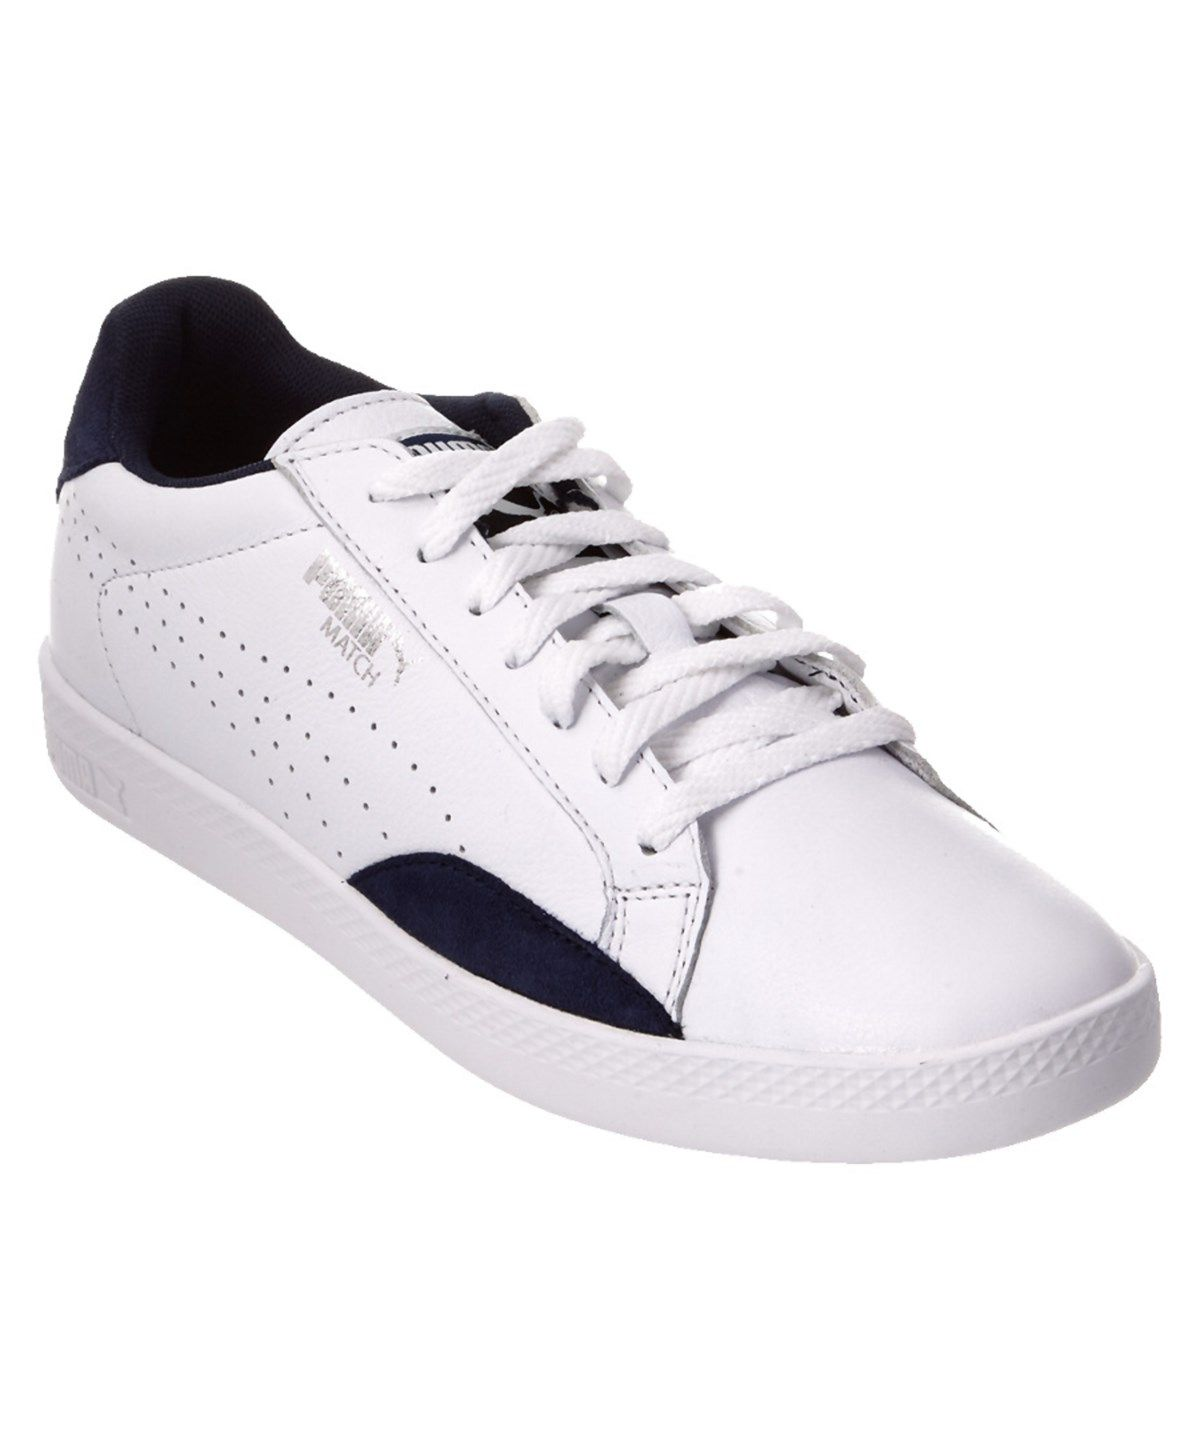 PUMA Women s Shoes - PUMA Puma WomenS Match Lo Basic Sports Sneaker .  puma f9a18eef7